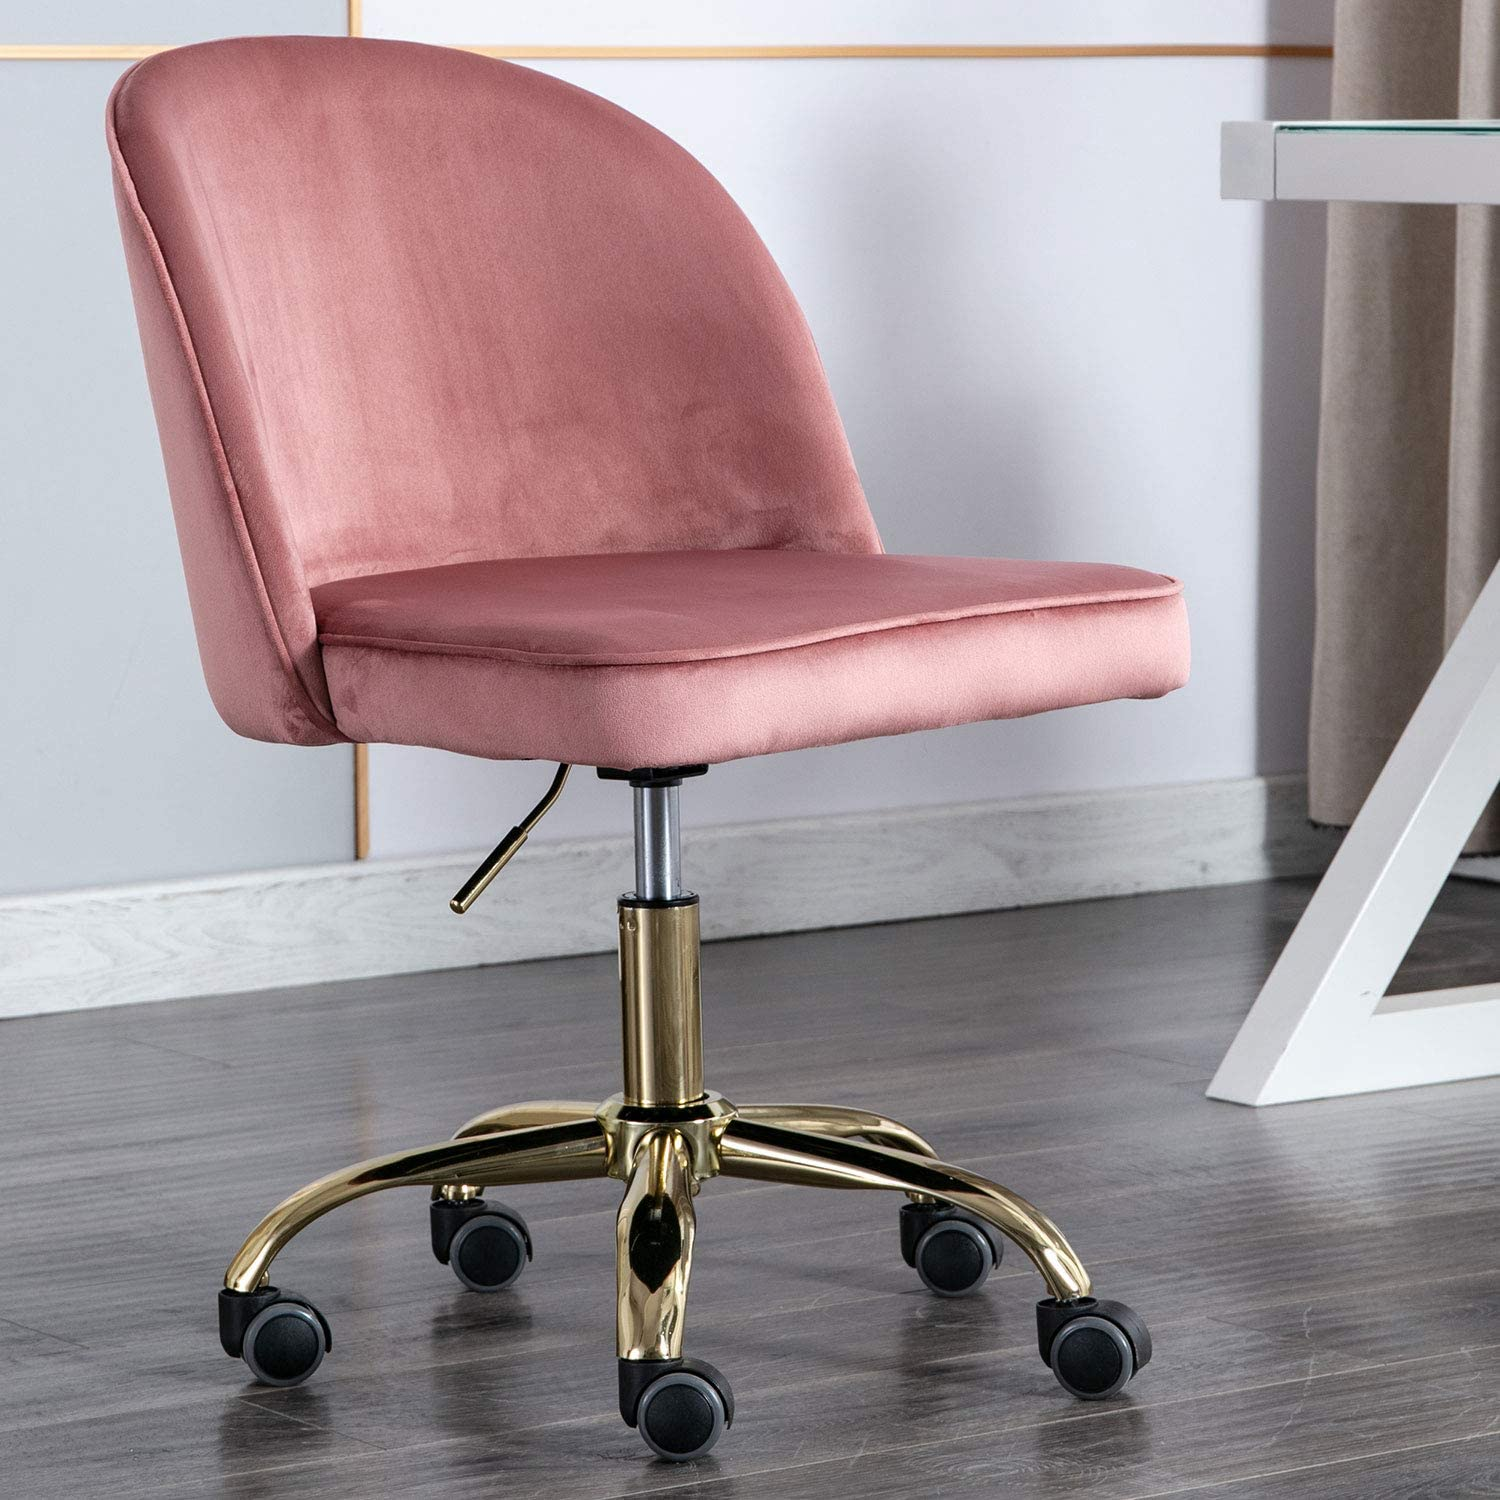 Modern Swivel Desk Chair Accent Velvet Office Chair, Adjustable Armless  Chair Study Chair with 30 Degree Castor Wheels (Pink)